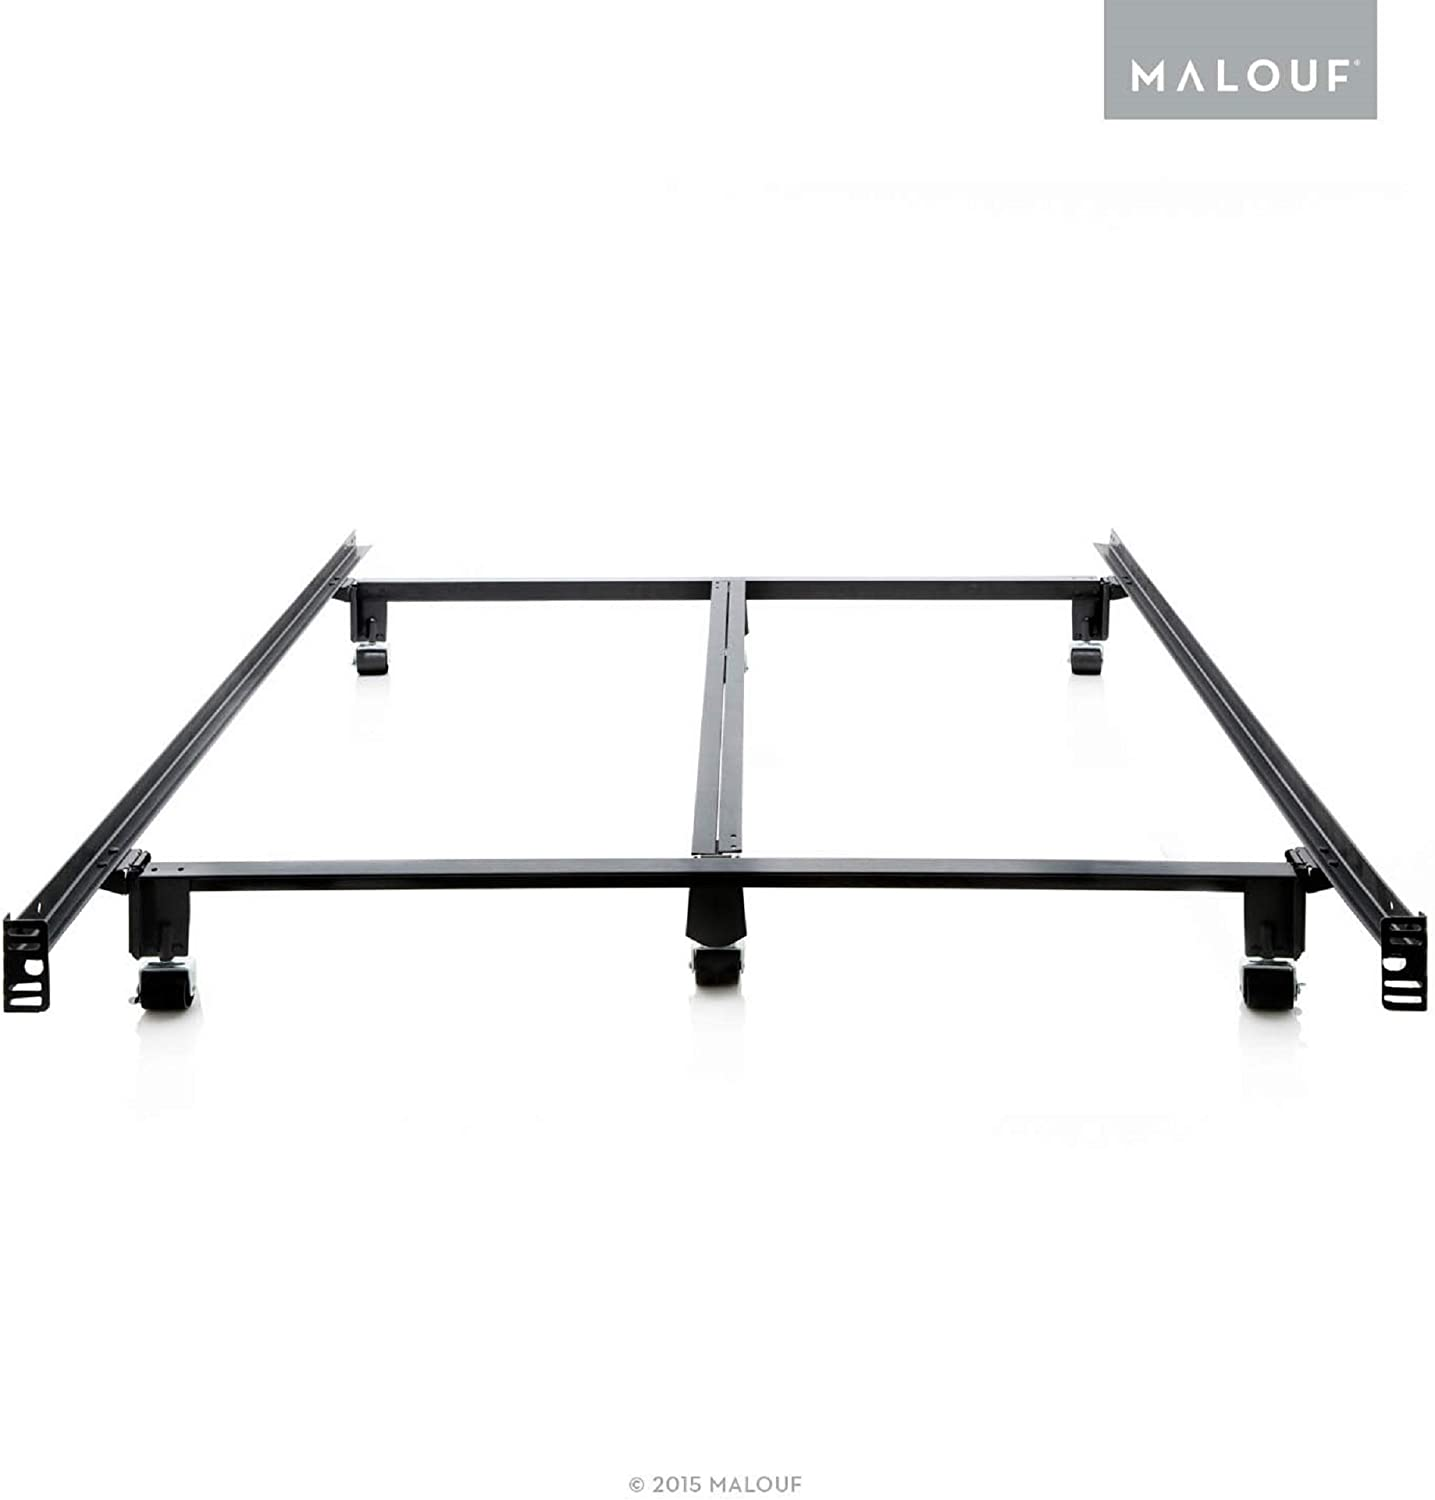 STRUCTURES STEELOCK Super Duty Steel Wedge Lock Metal Bed Frame – Twin